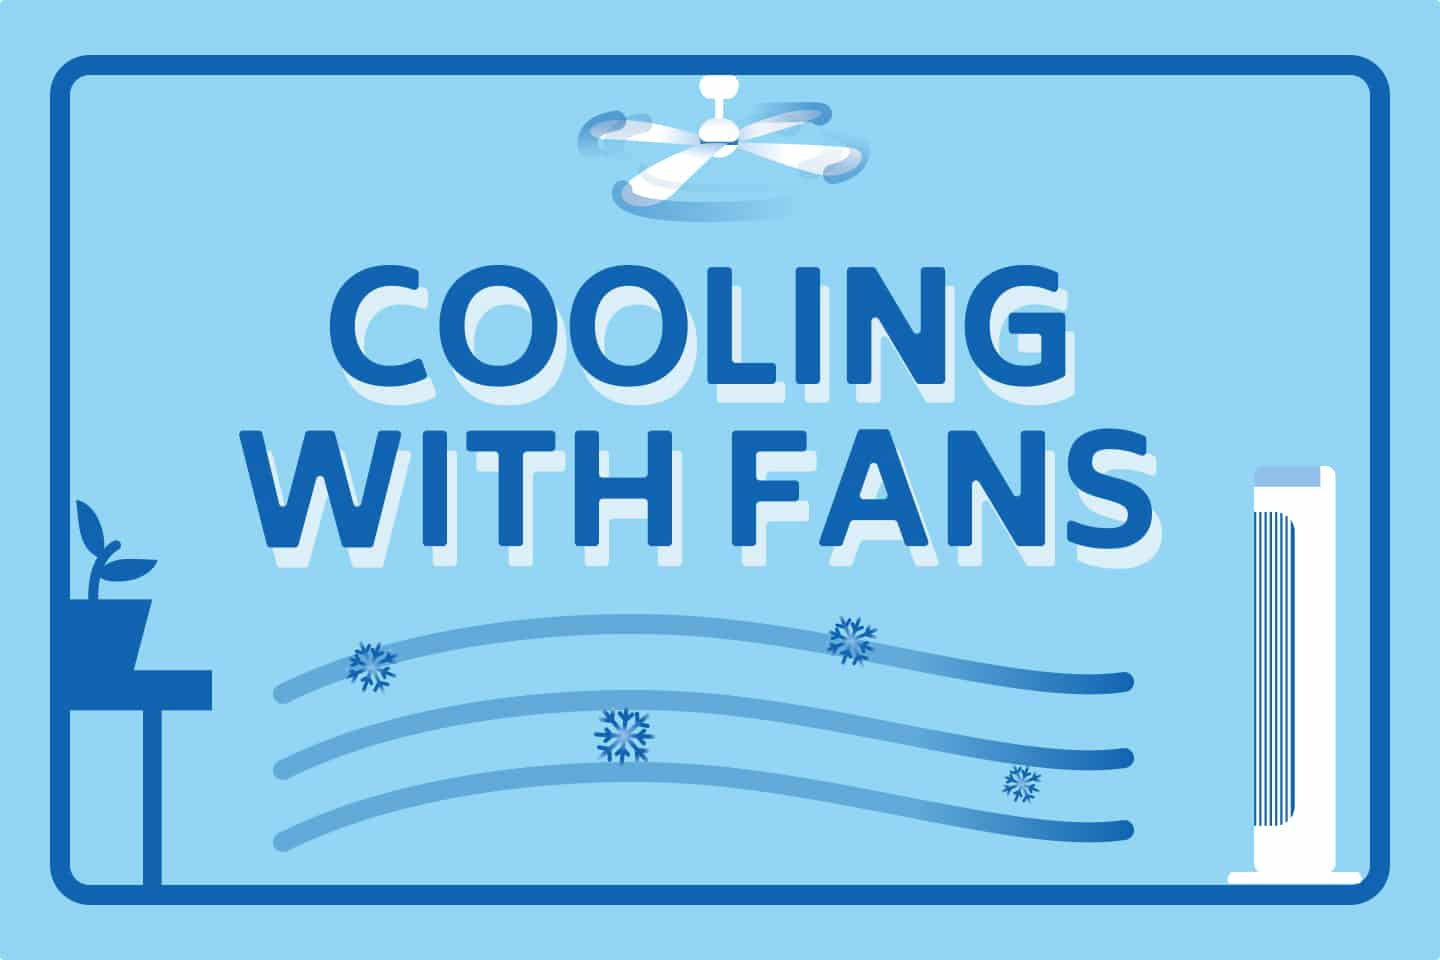 ❄️ How To Cool a Room With Fans?